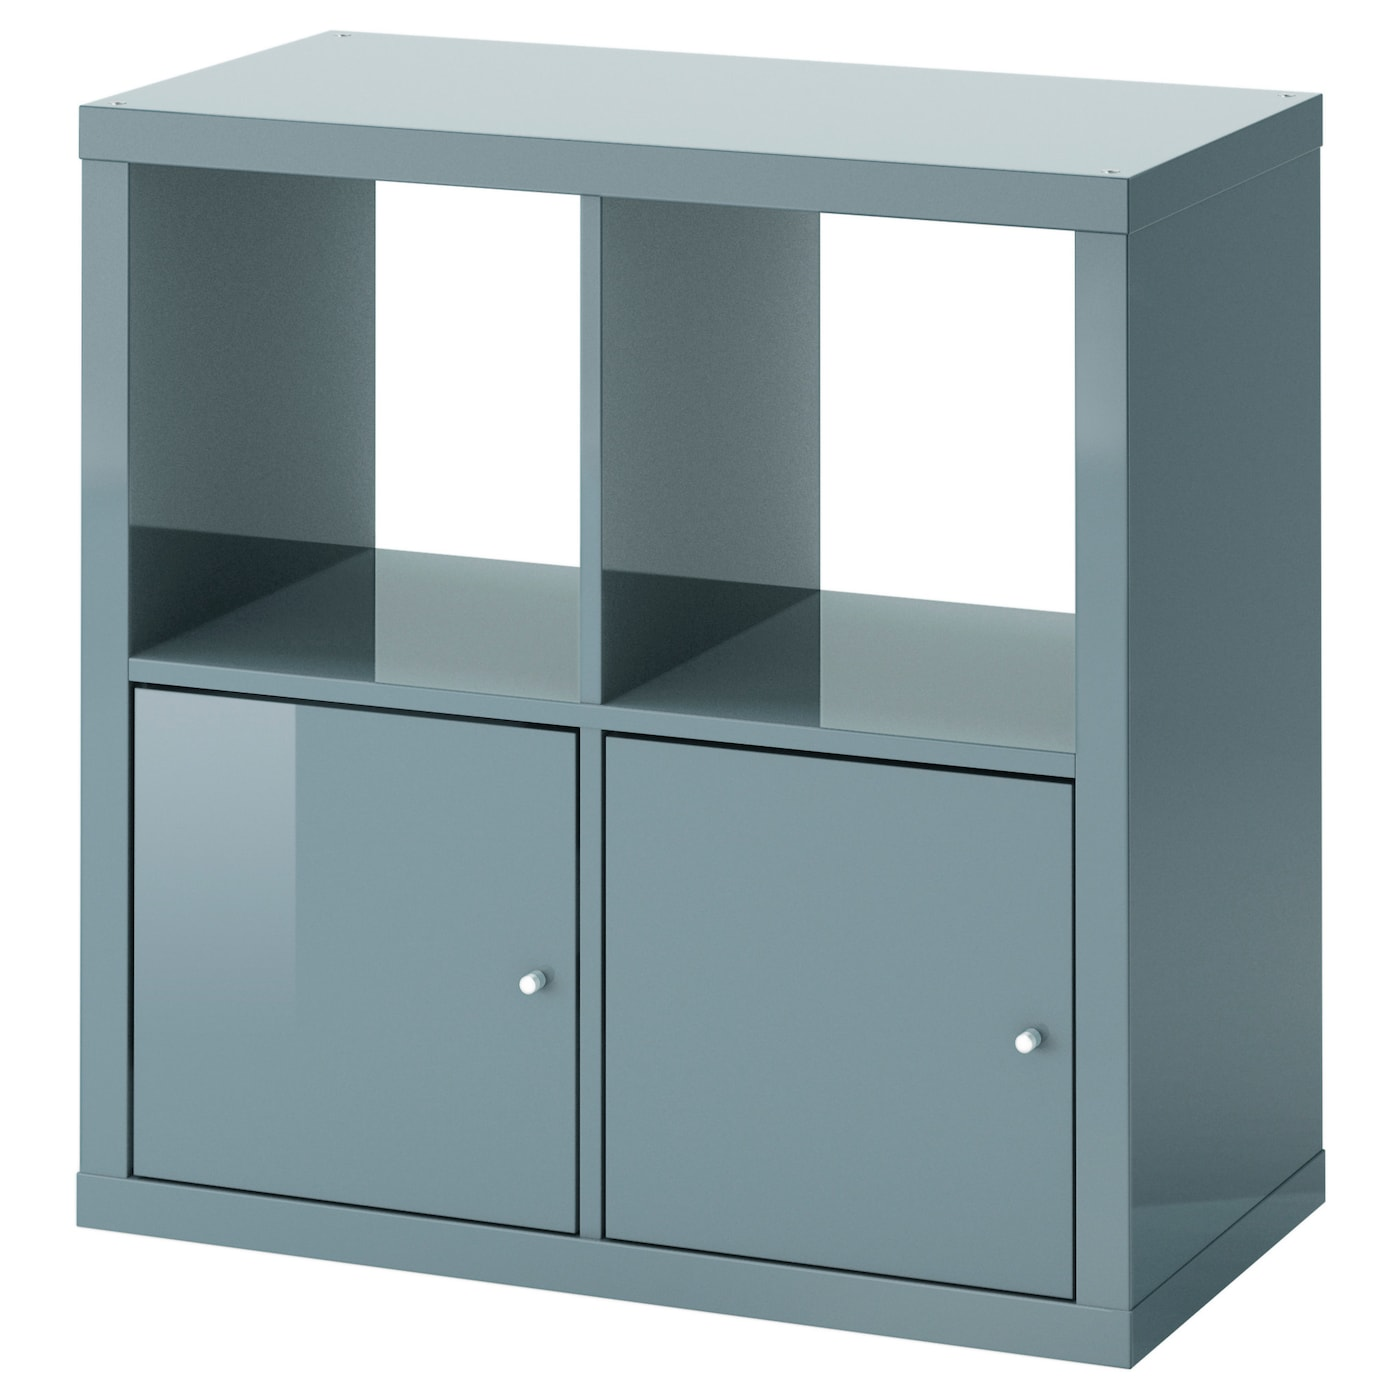 kallax shelving unit with doors high gloss grey turquoise. Black Bedroom Furniture Sets. Home Design Ideas